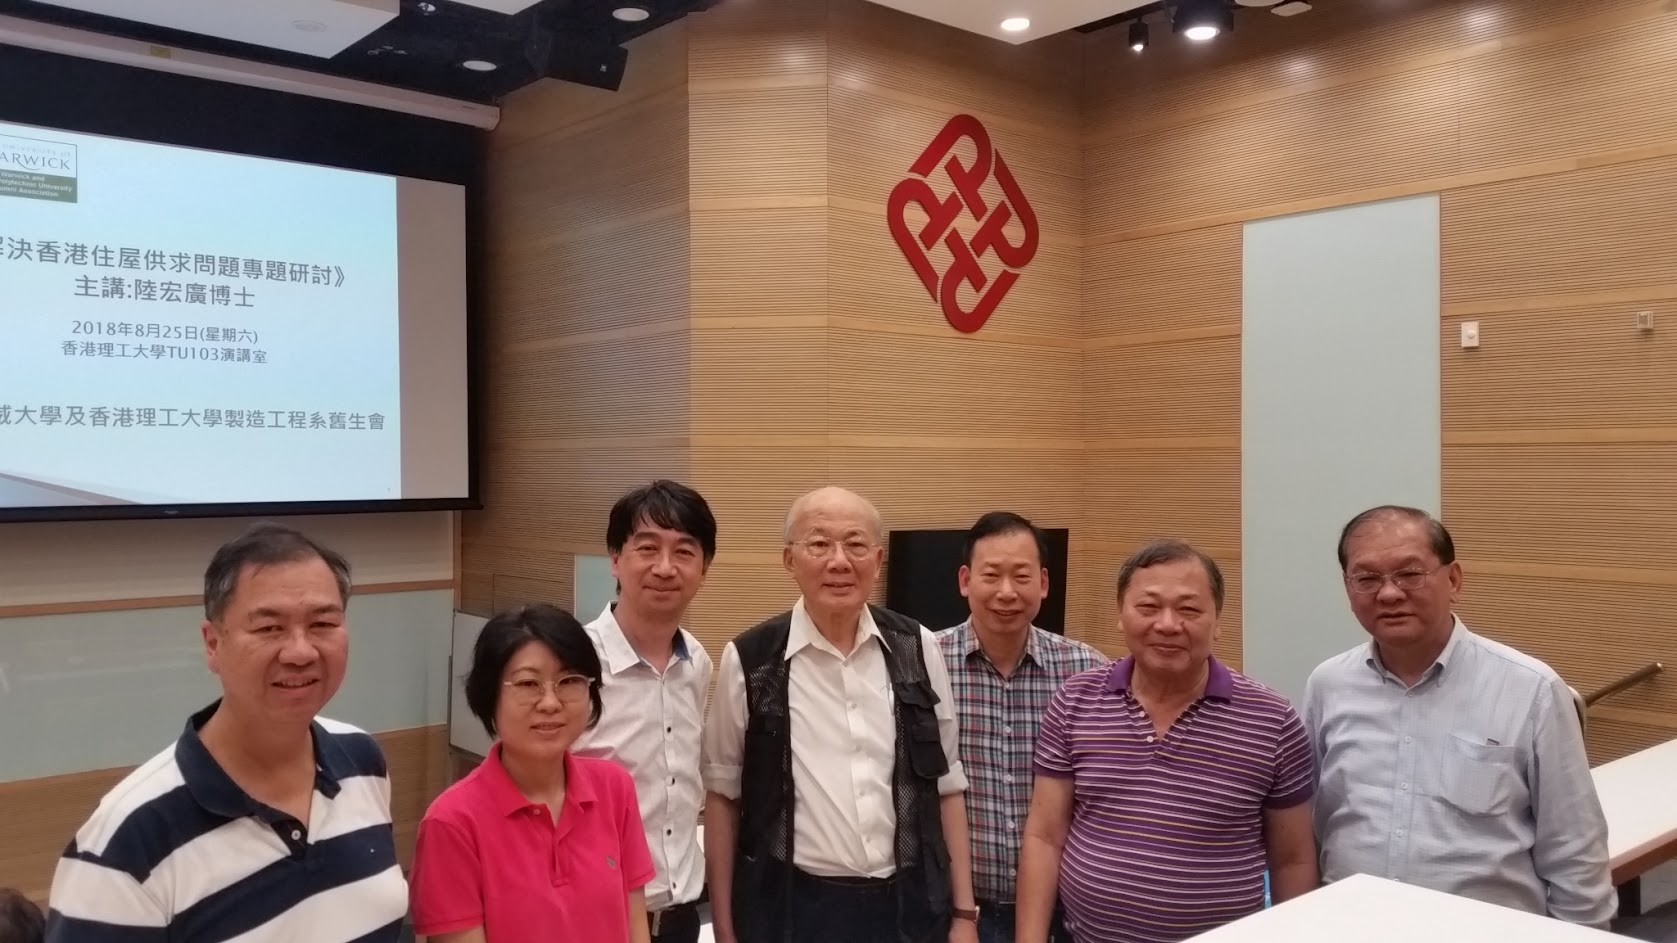 Dr.John Luk H.K. Housing Problem Seminar 2018-08-25